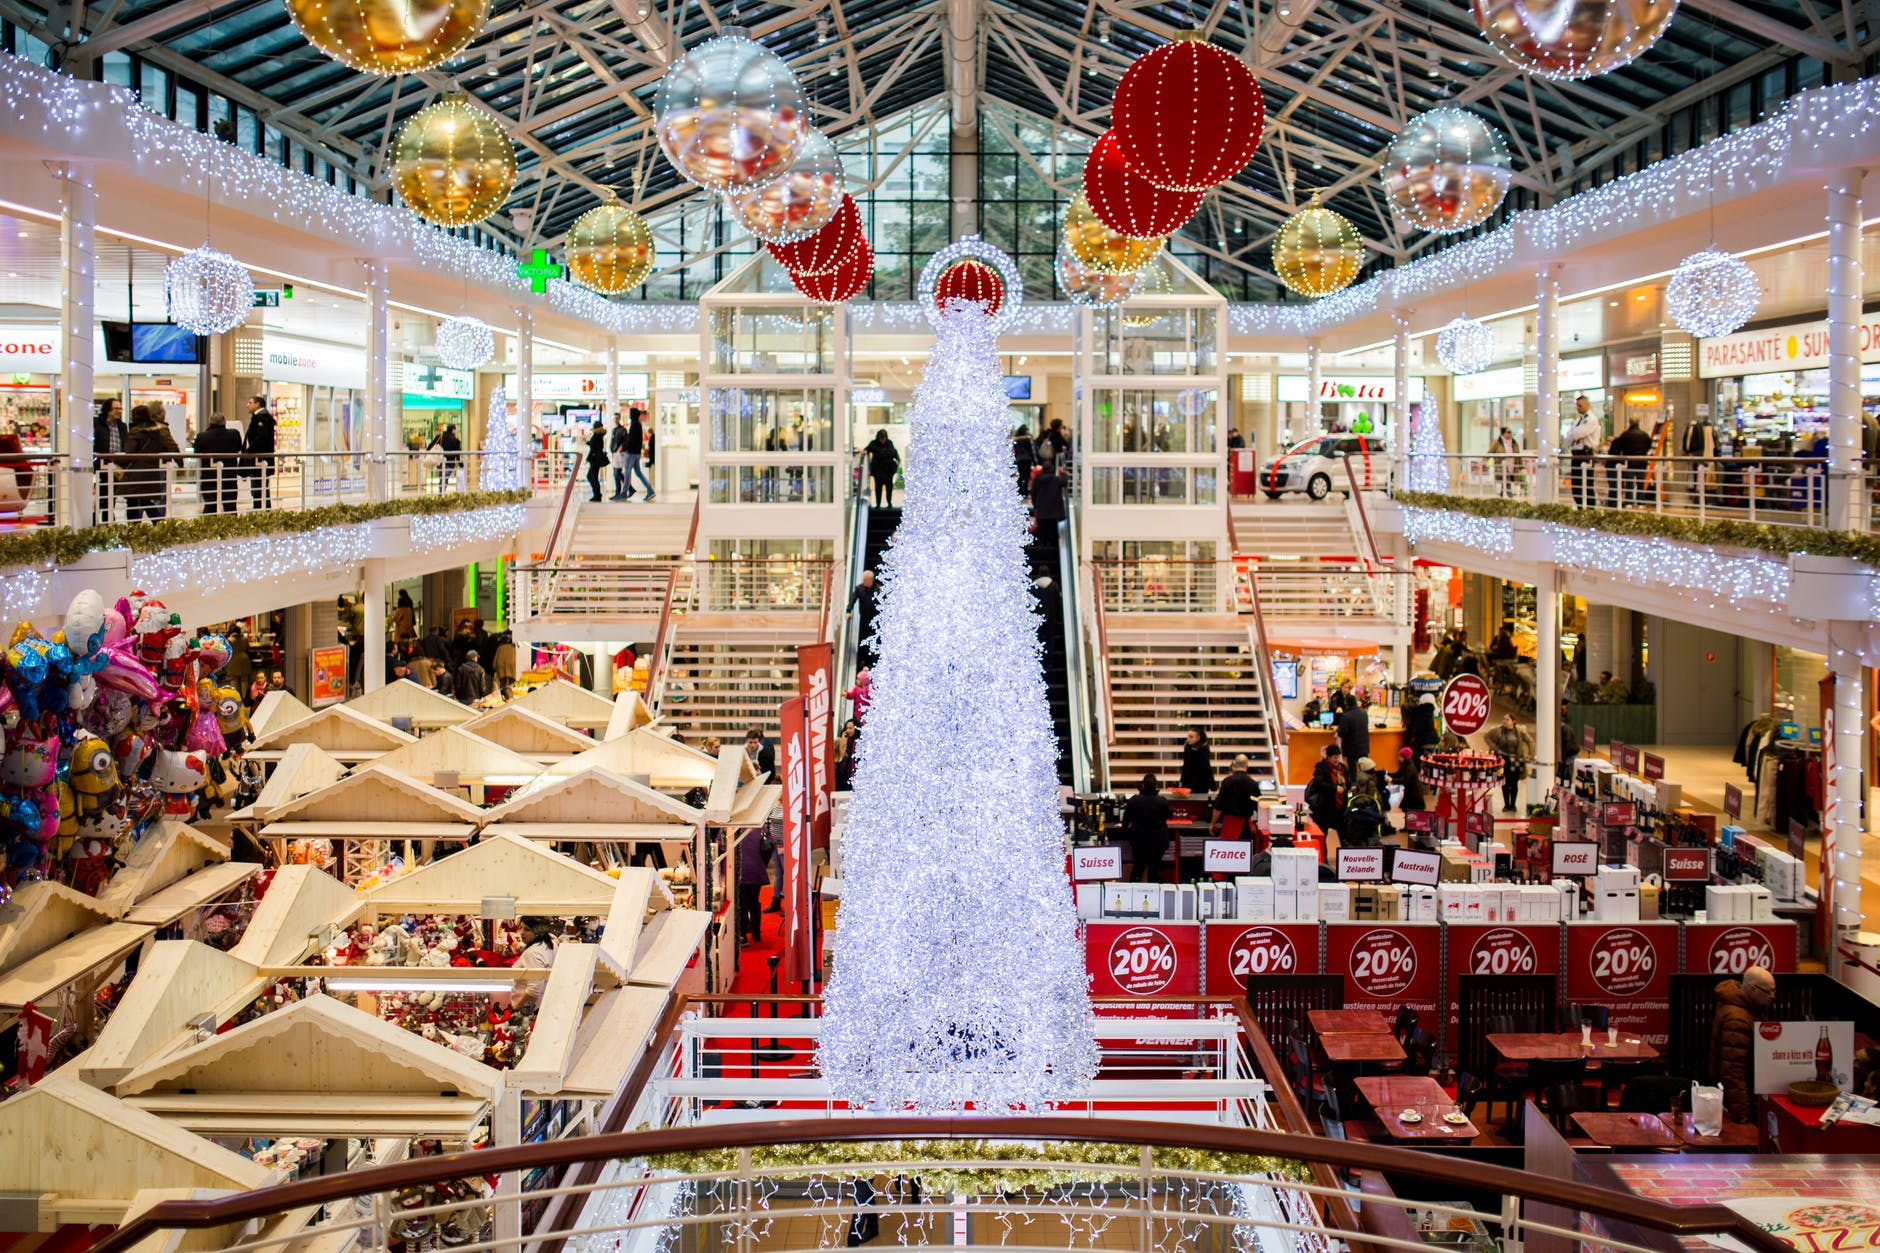 Stock photo of a shopping mall at Christmas time, filled with crowded shoppers, a large Christmas tree and sparkling holiday decorations.